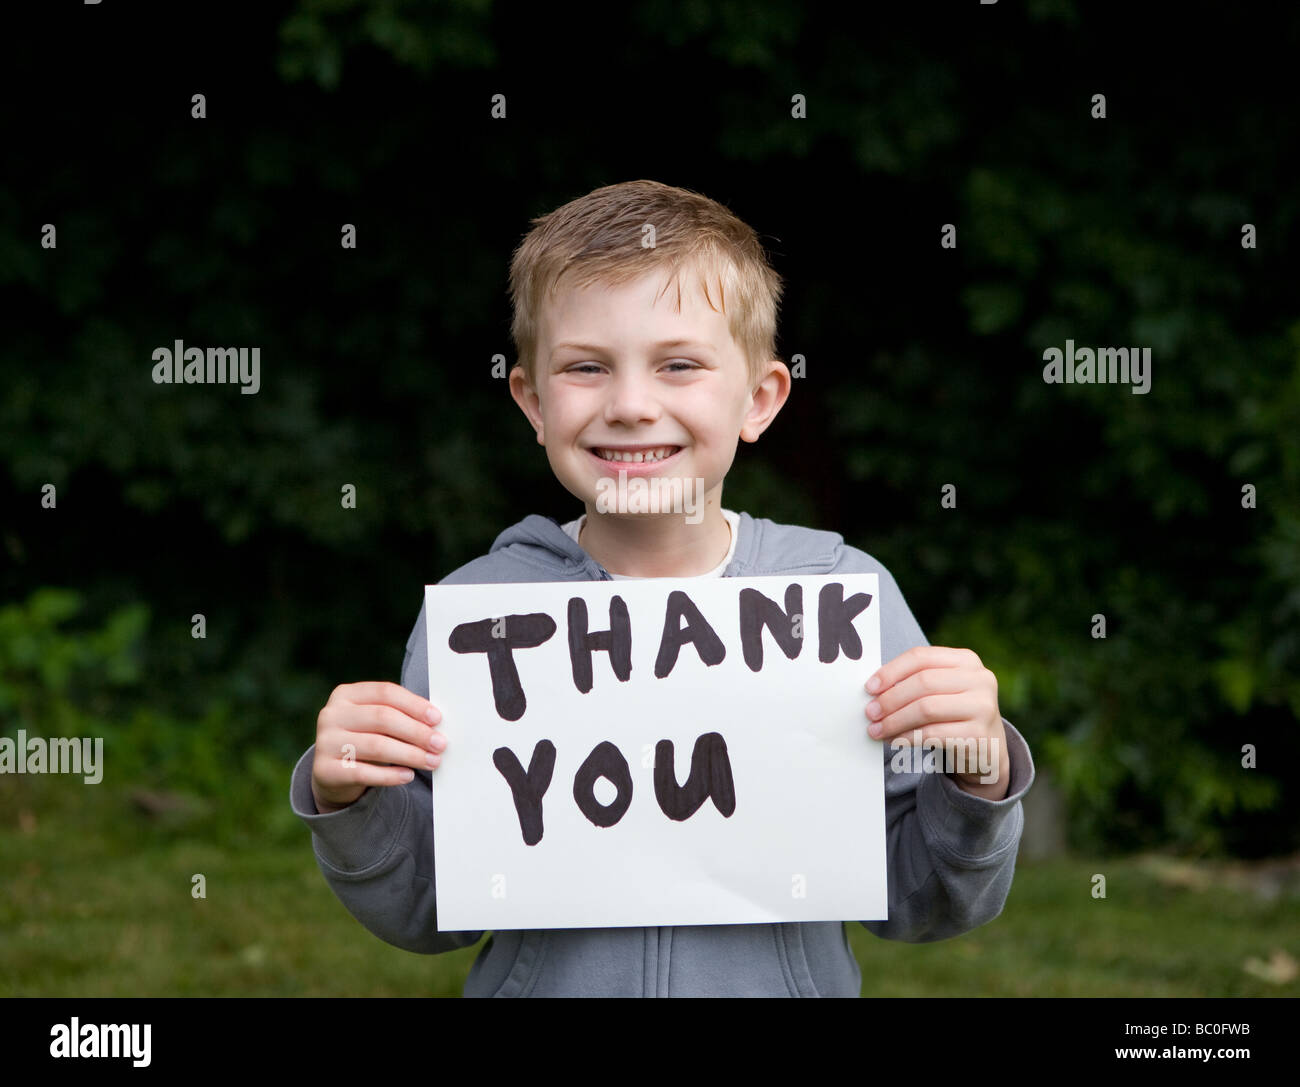 Young boy smiling with Thank You written on a paper - Stock Image